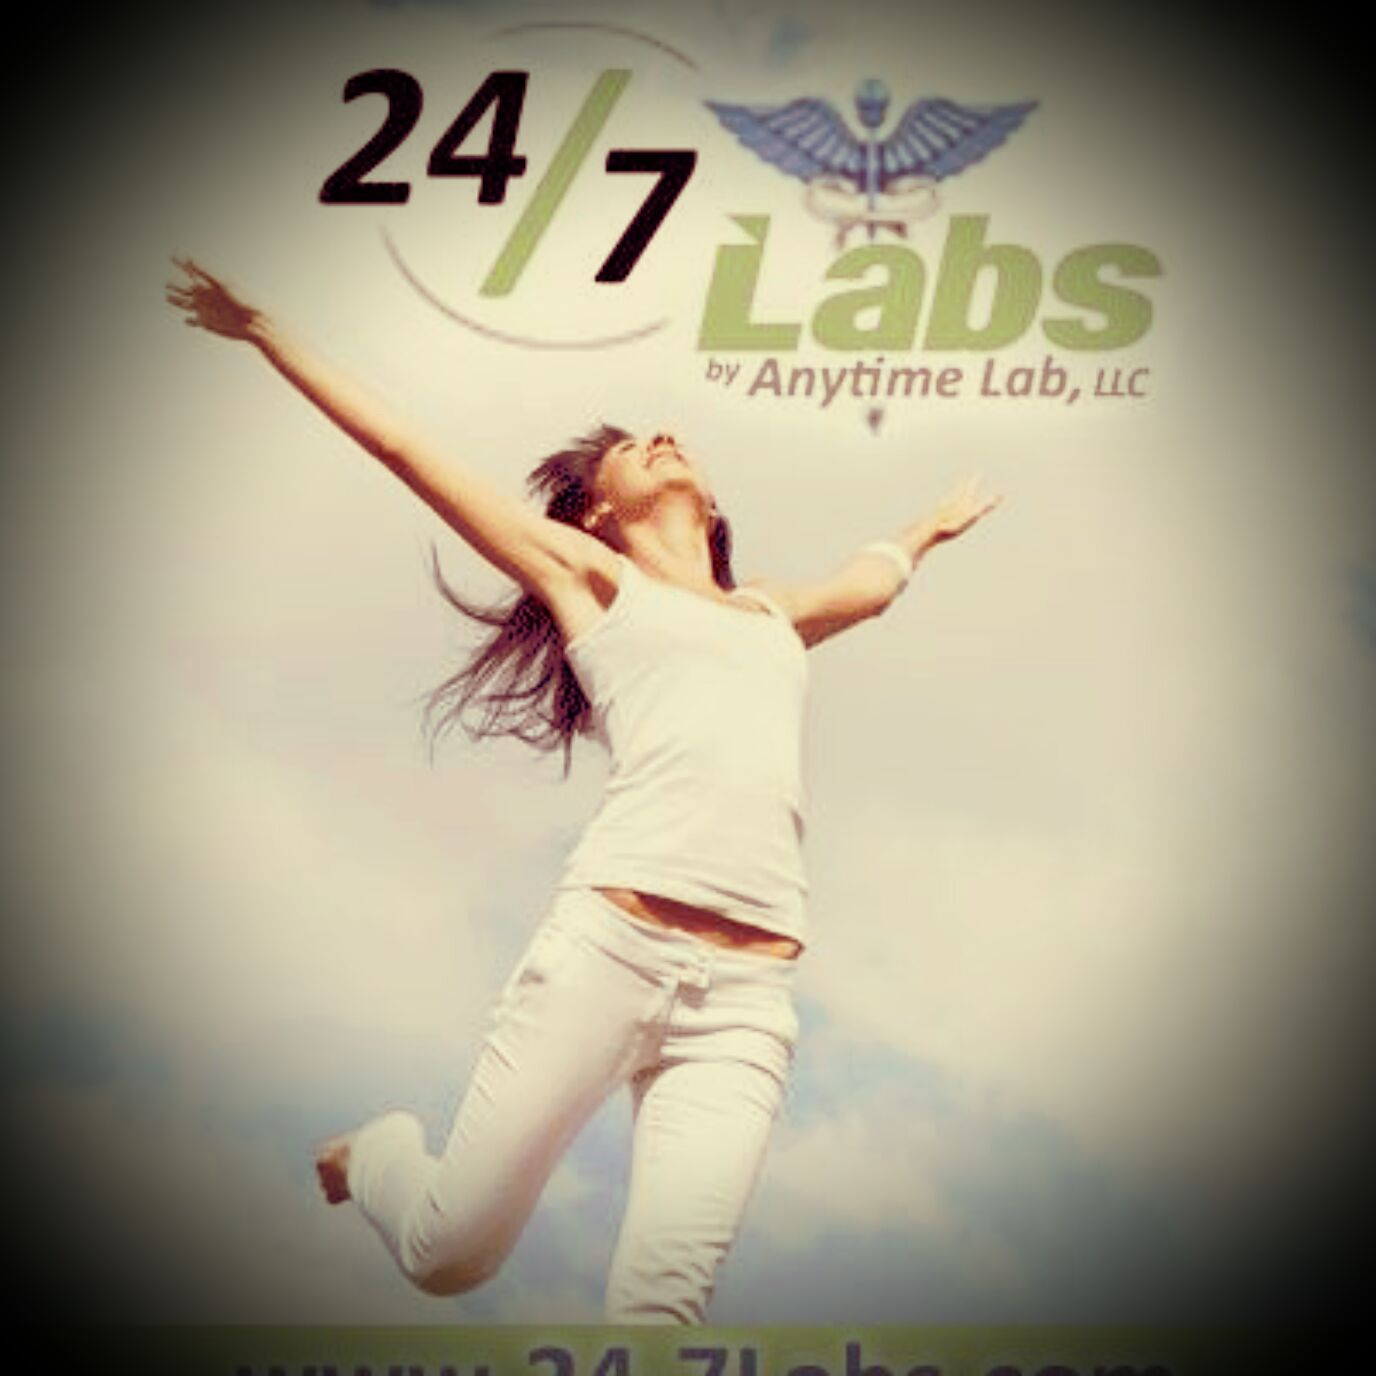 24/7labs image 2